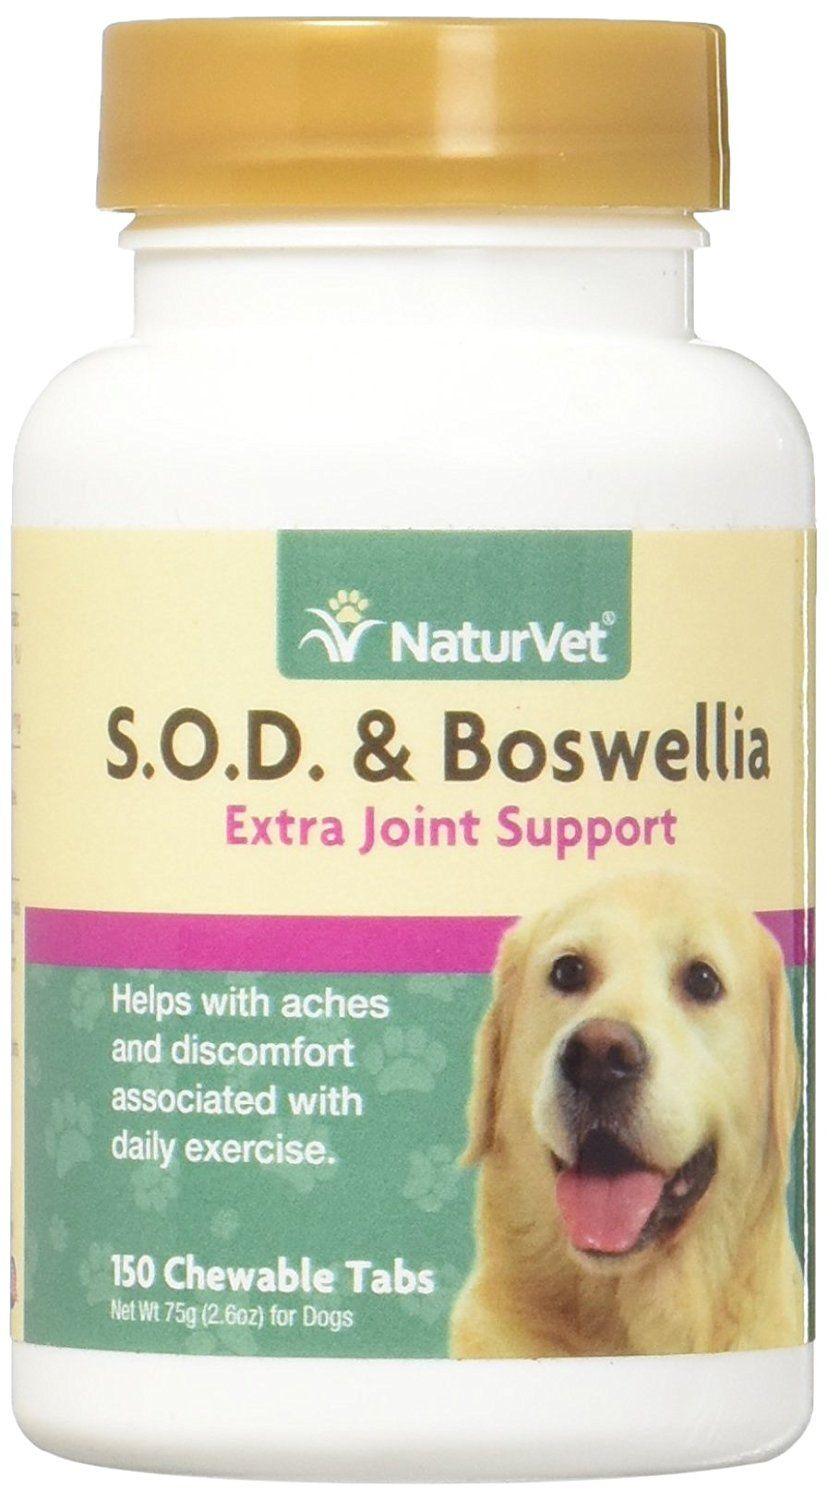 Nvet Sod Boswellia 150ct Details Can Be Found By Clicking On The Image This Is An Affiliate Link Mycat Dog Health Cat Health Pet Supplements